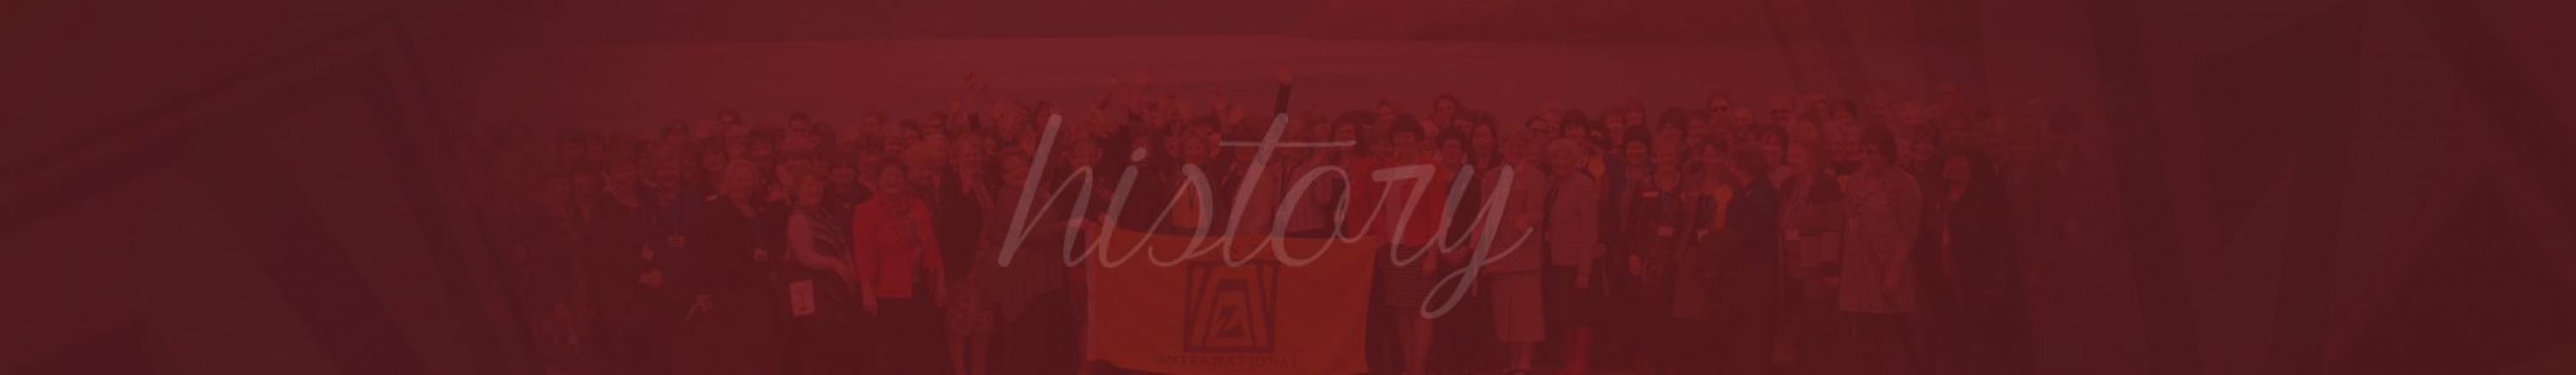 History-banner